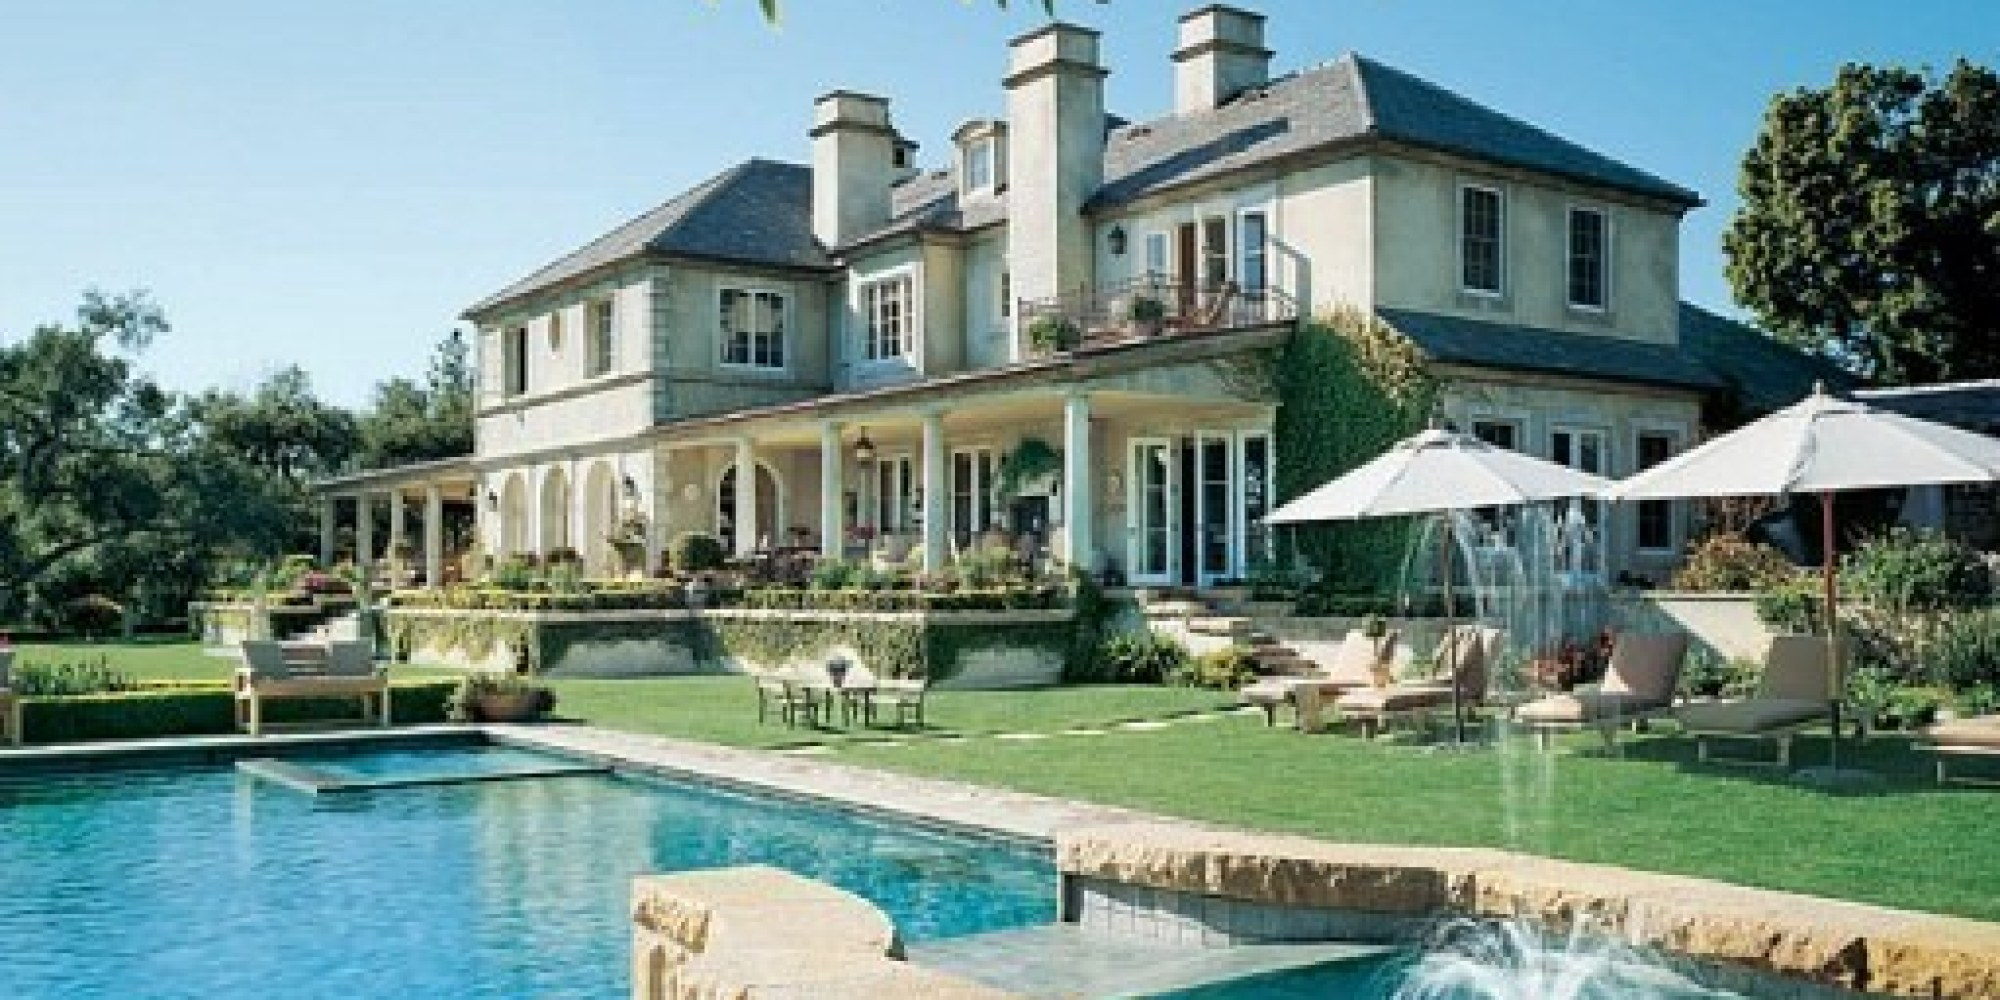 11 amazing celebrity pools huffpost - Maison de star americaine ...